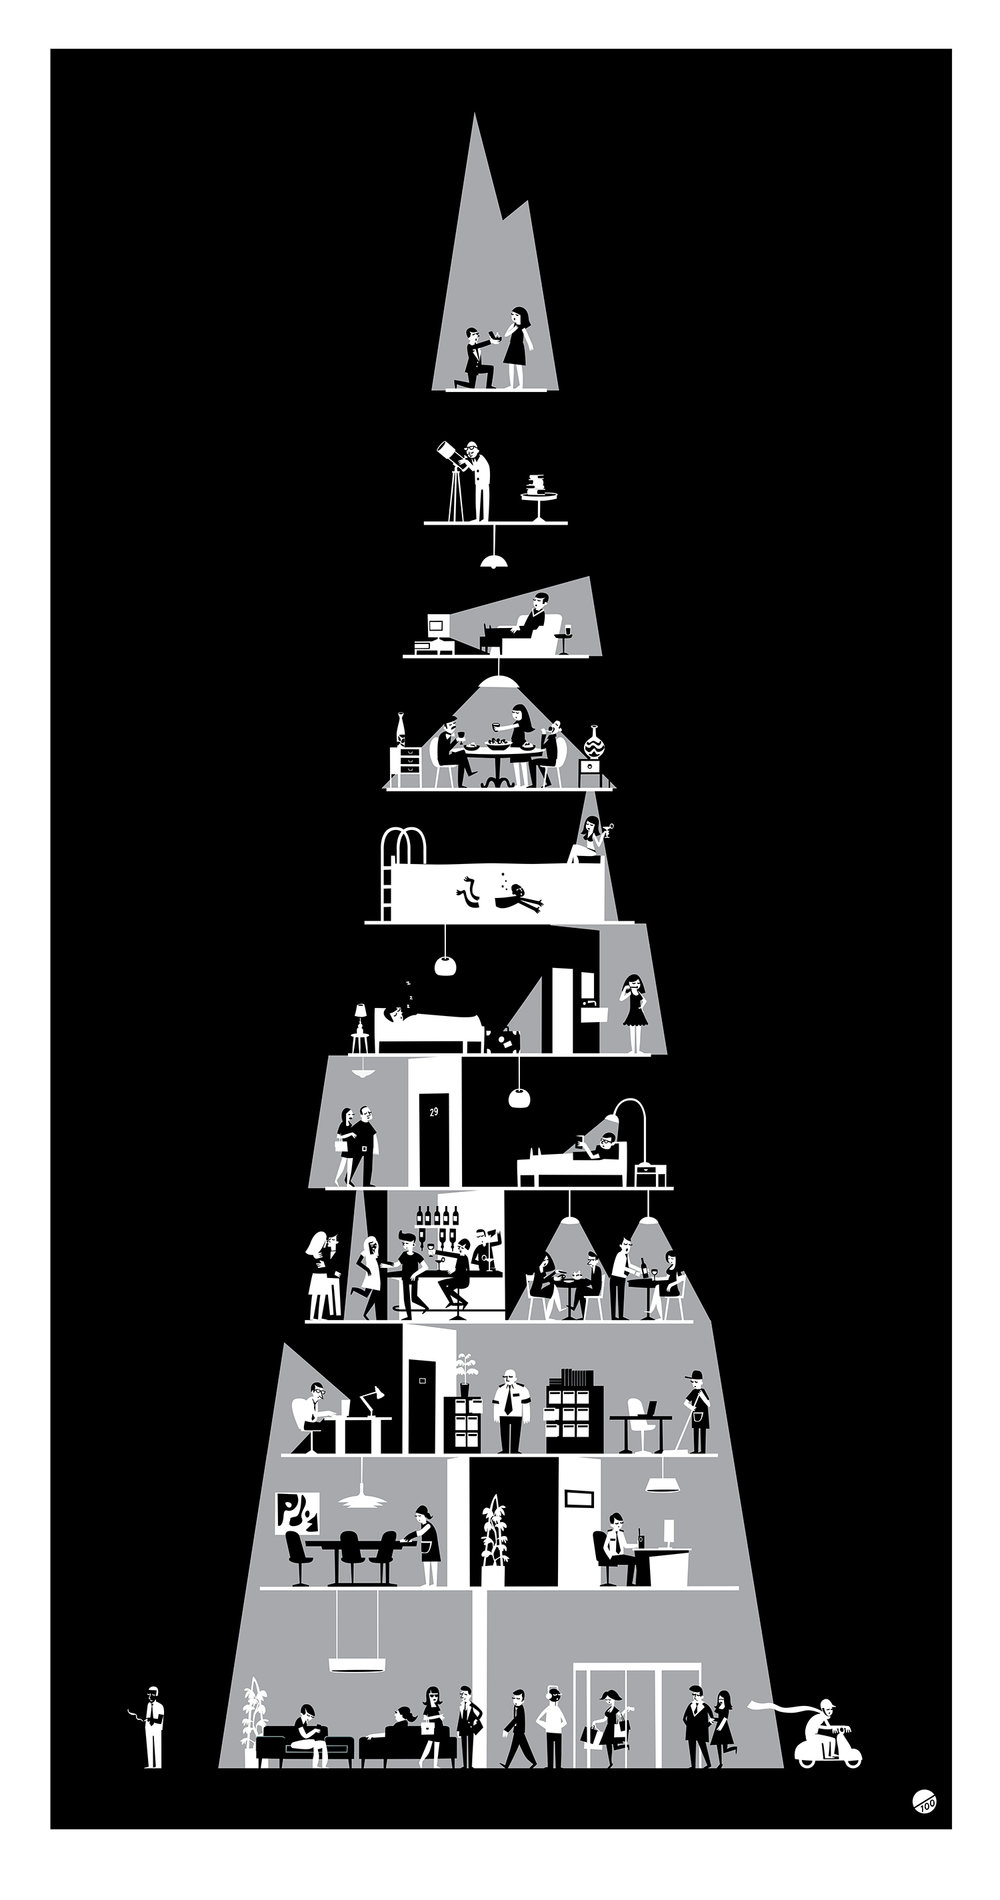 Paul McBride    Shard Night, 2016. Limited edition screen print. Edition of 100. 50 x 95 cm. £230.00 (framed).   £130.00 (unframed)